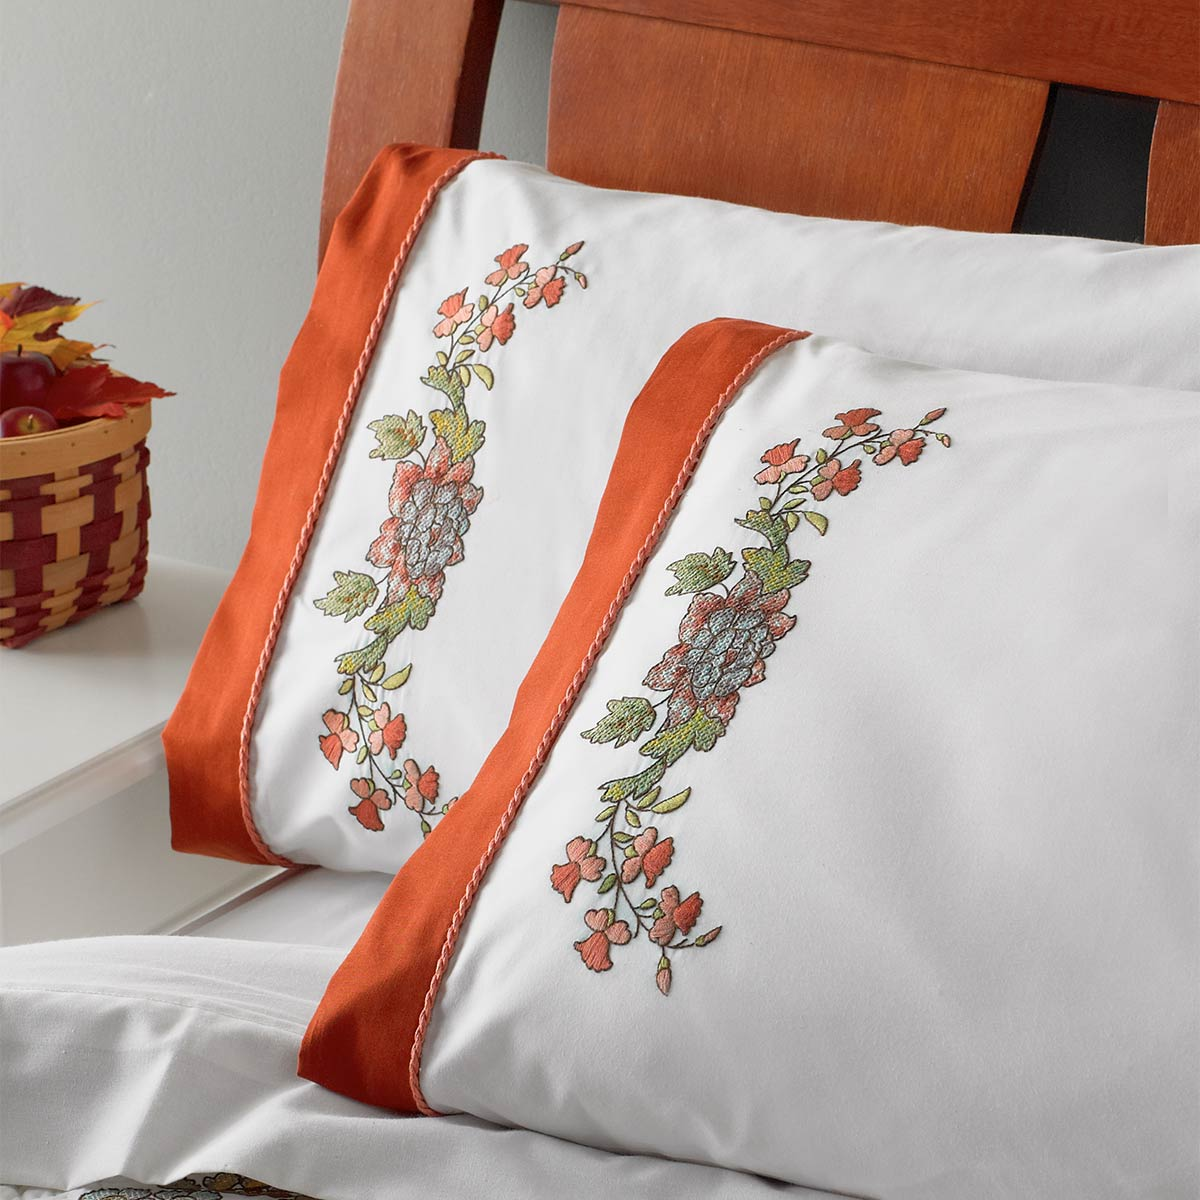 Bucilla ® Waverly ® Charleston Chirp Collection Stamped Pillowcase Pair